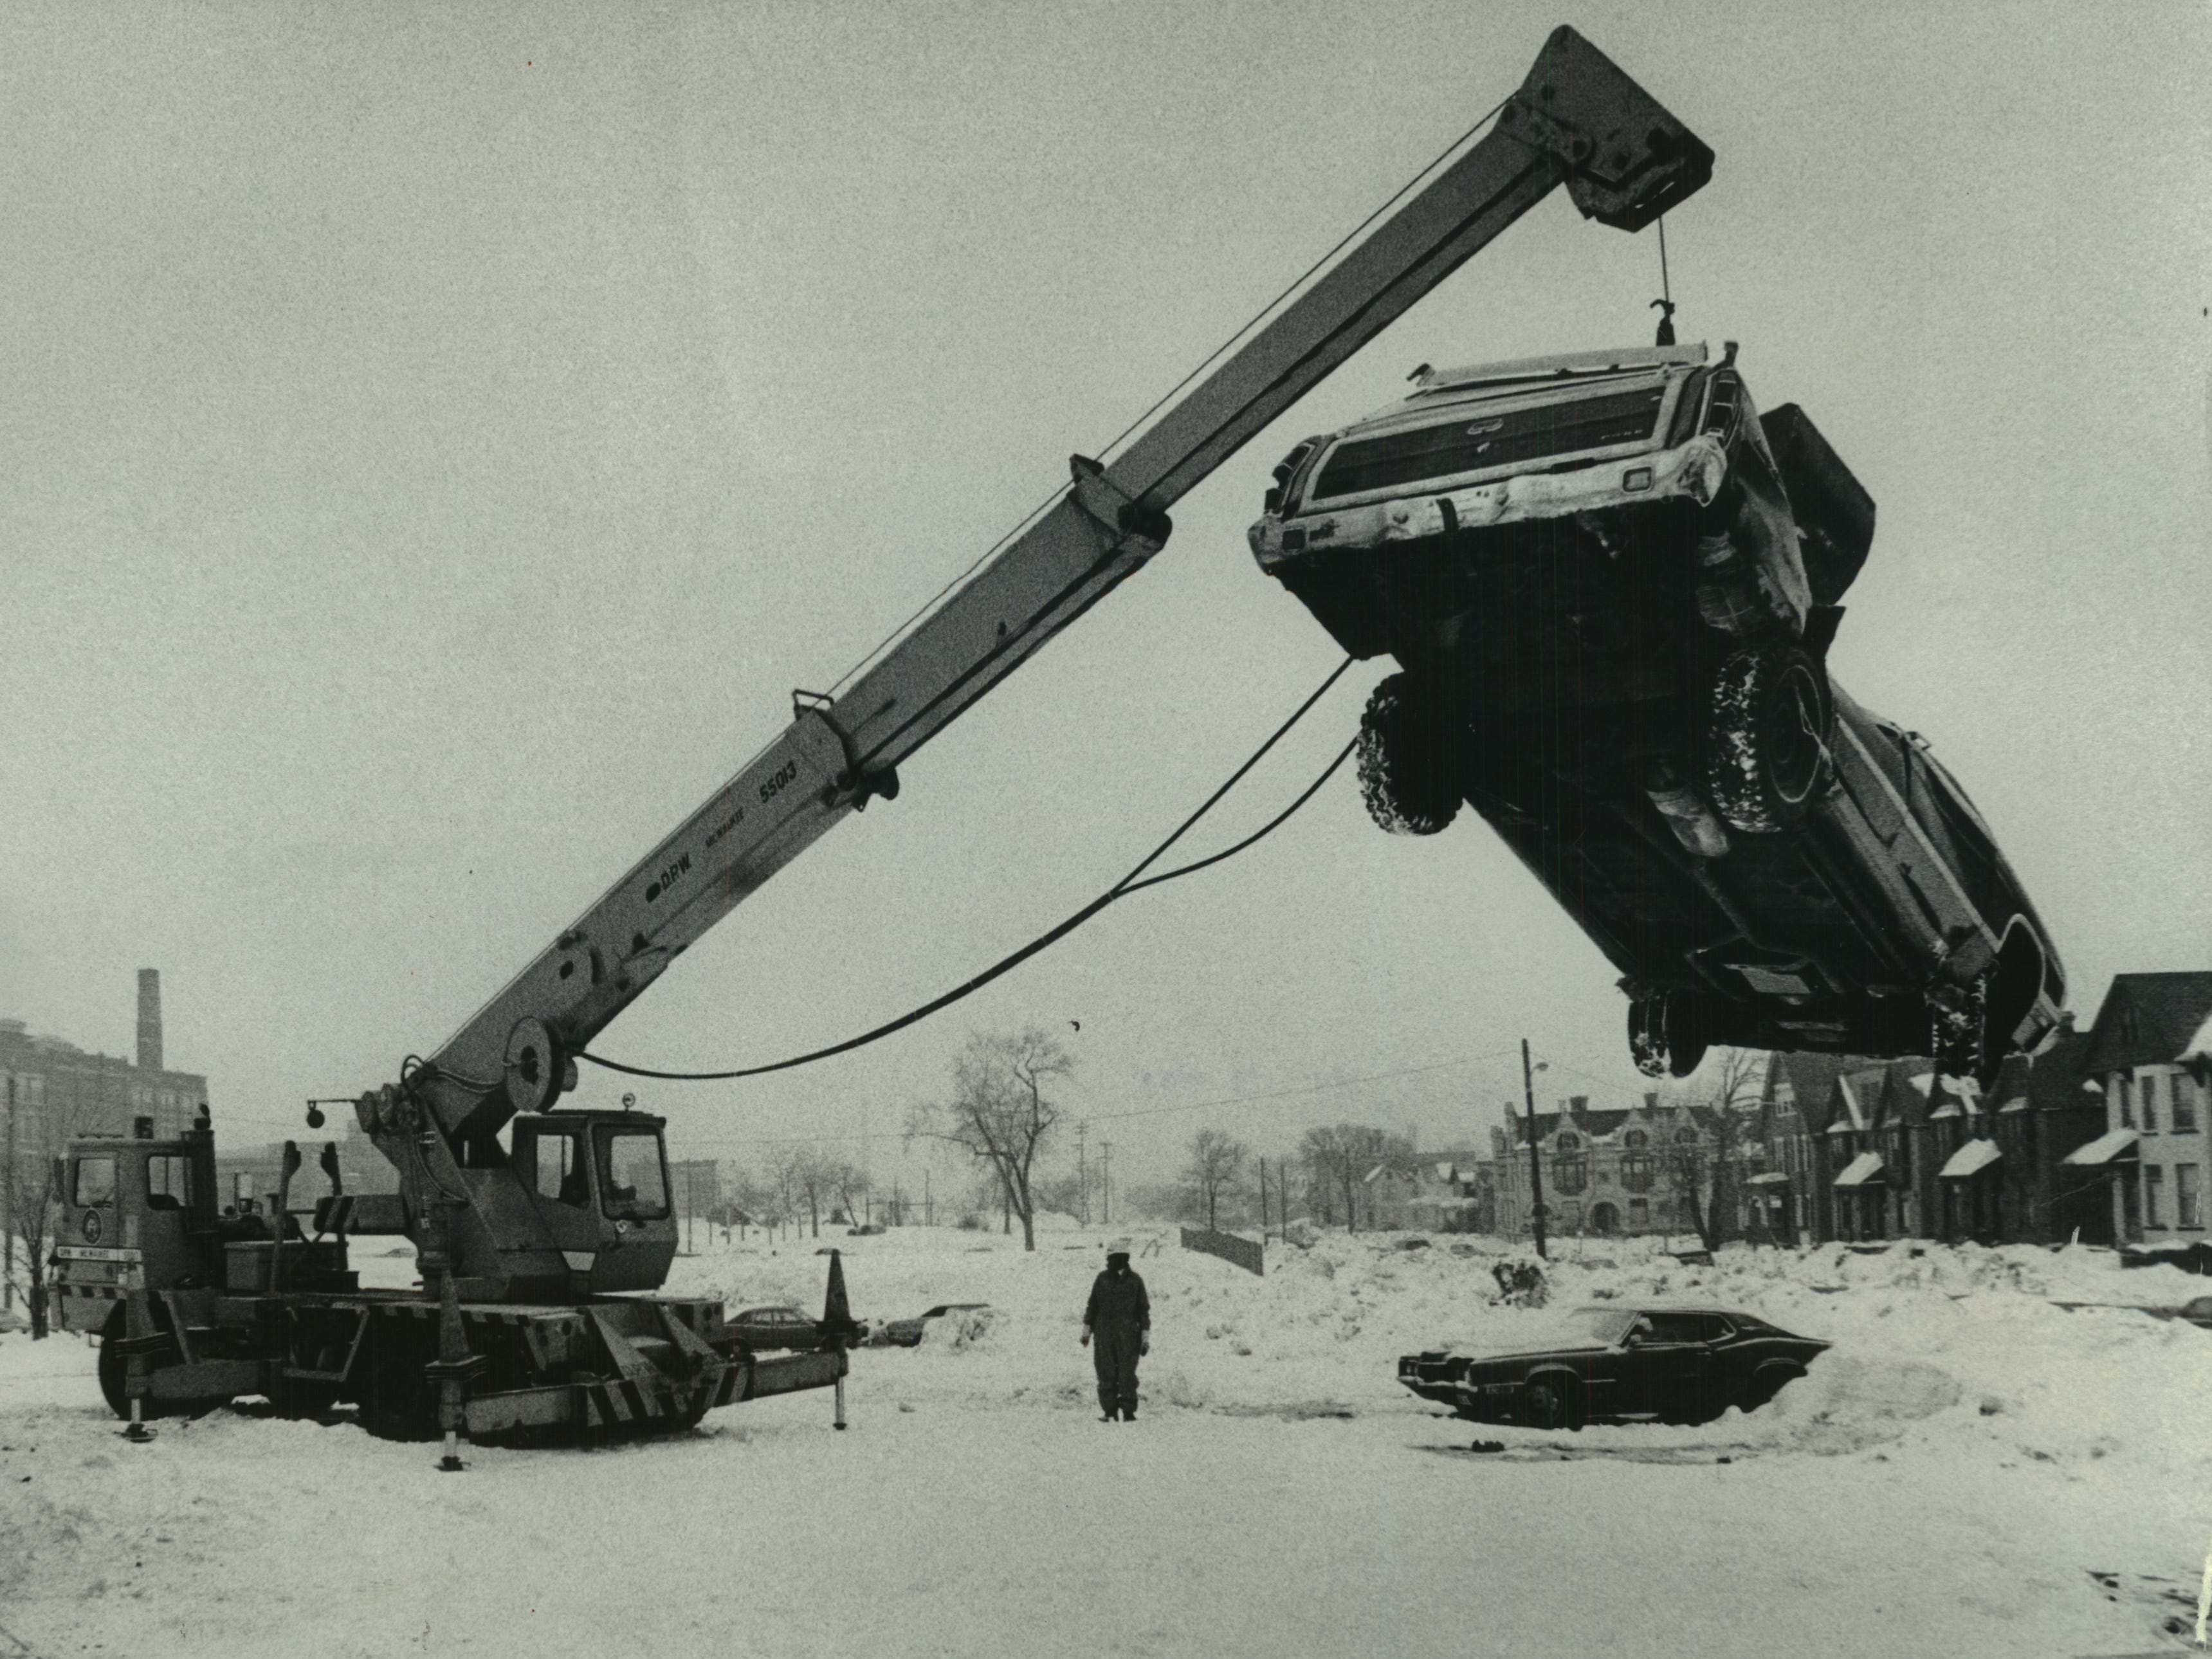 About 50 vehicles valued at less than $100 each were removed from a parking lot near North Astor and East Lyon streets and taken to a metal shredder on Feb. 15, 1979. The cars, all unclaimed, were found abandoned by the city during snow removal after the Jan. 23-24, 1979, snowstorm. More valuable cars that were not claimed were sold to salvage dealers. This photo was published in the Feb. 16, 1979, Milwaukee Journal.